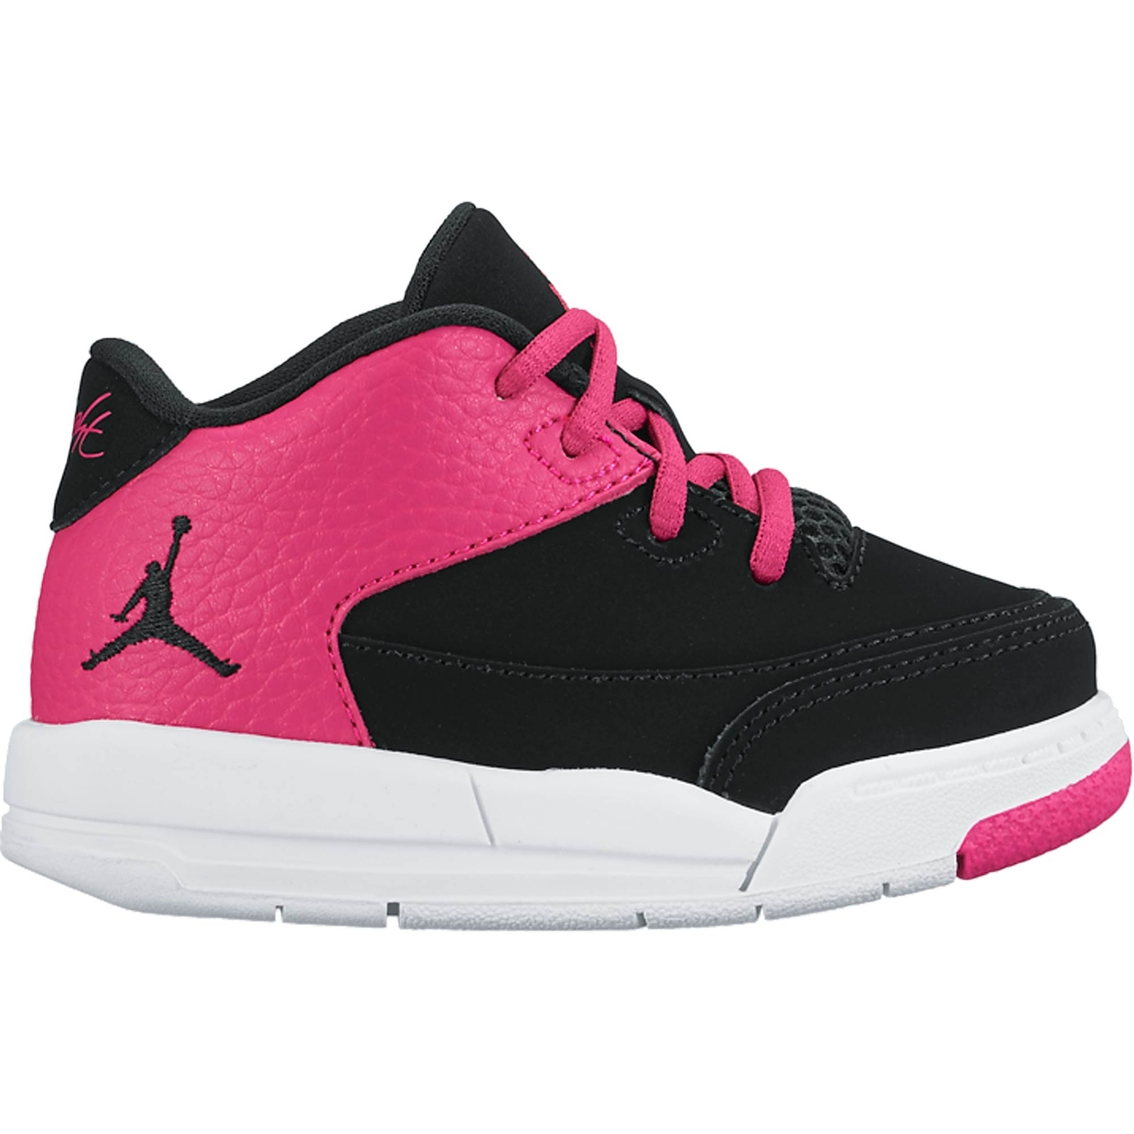 Free shipping BOTH ways on Sneakers & Athletic Shoes, Girls, from our vast selection of styles. Fast delivery, and 24/7/ real-person service with a smile. Click or call